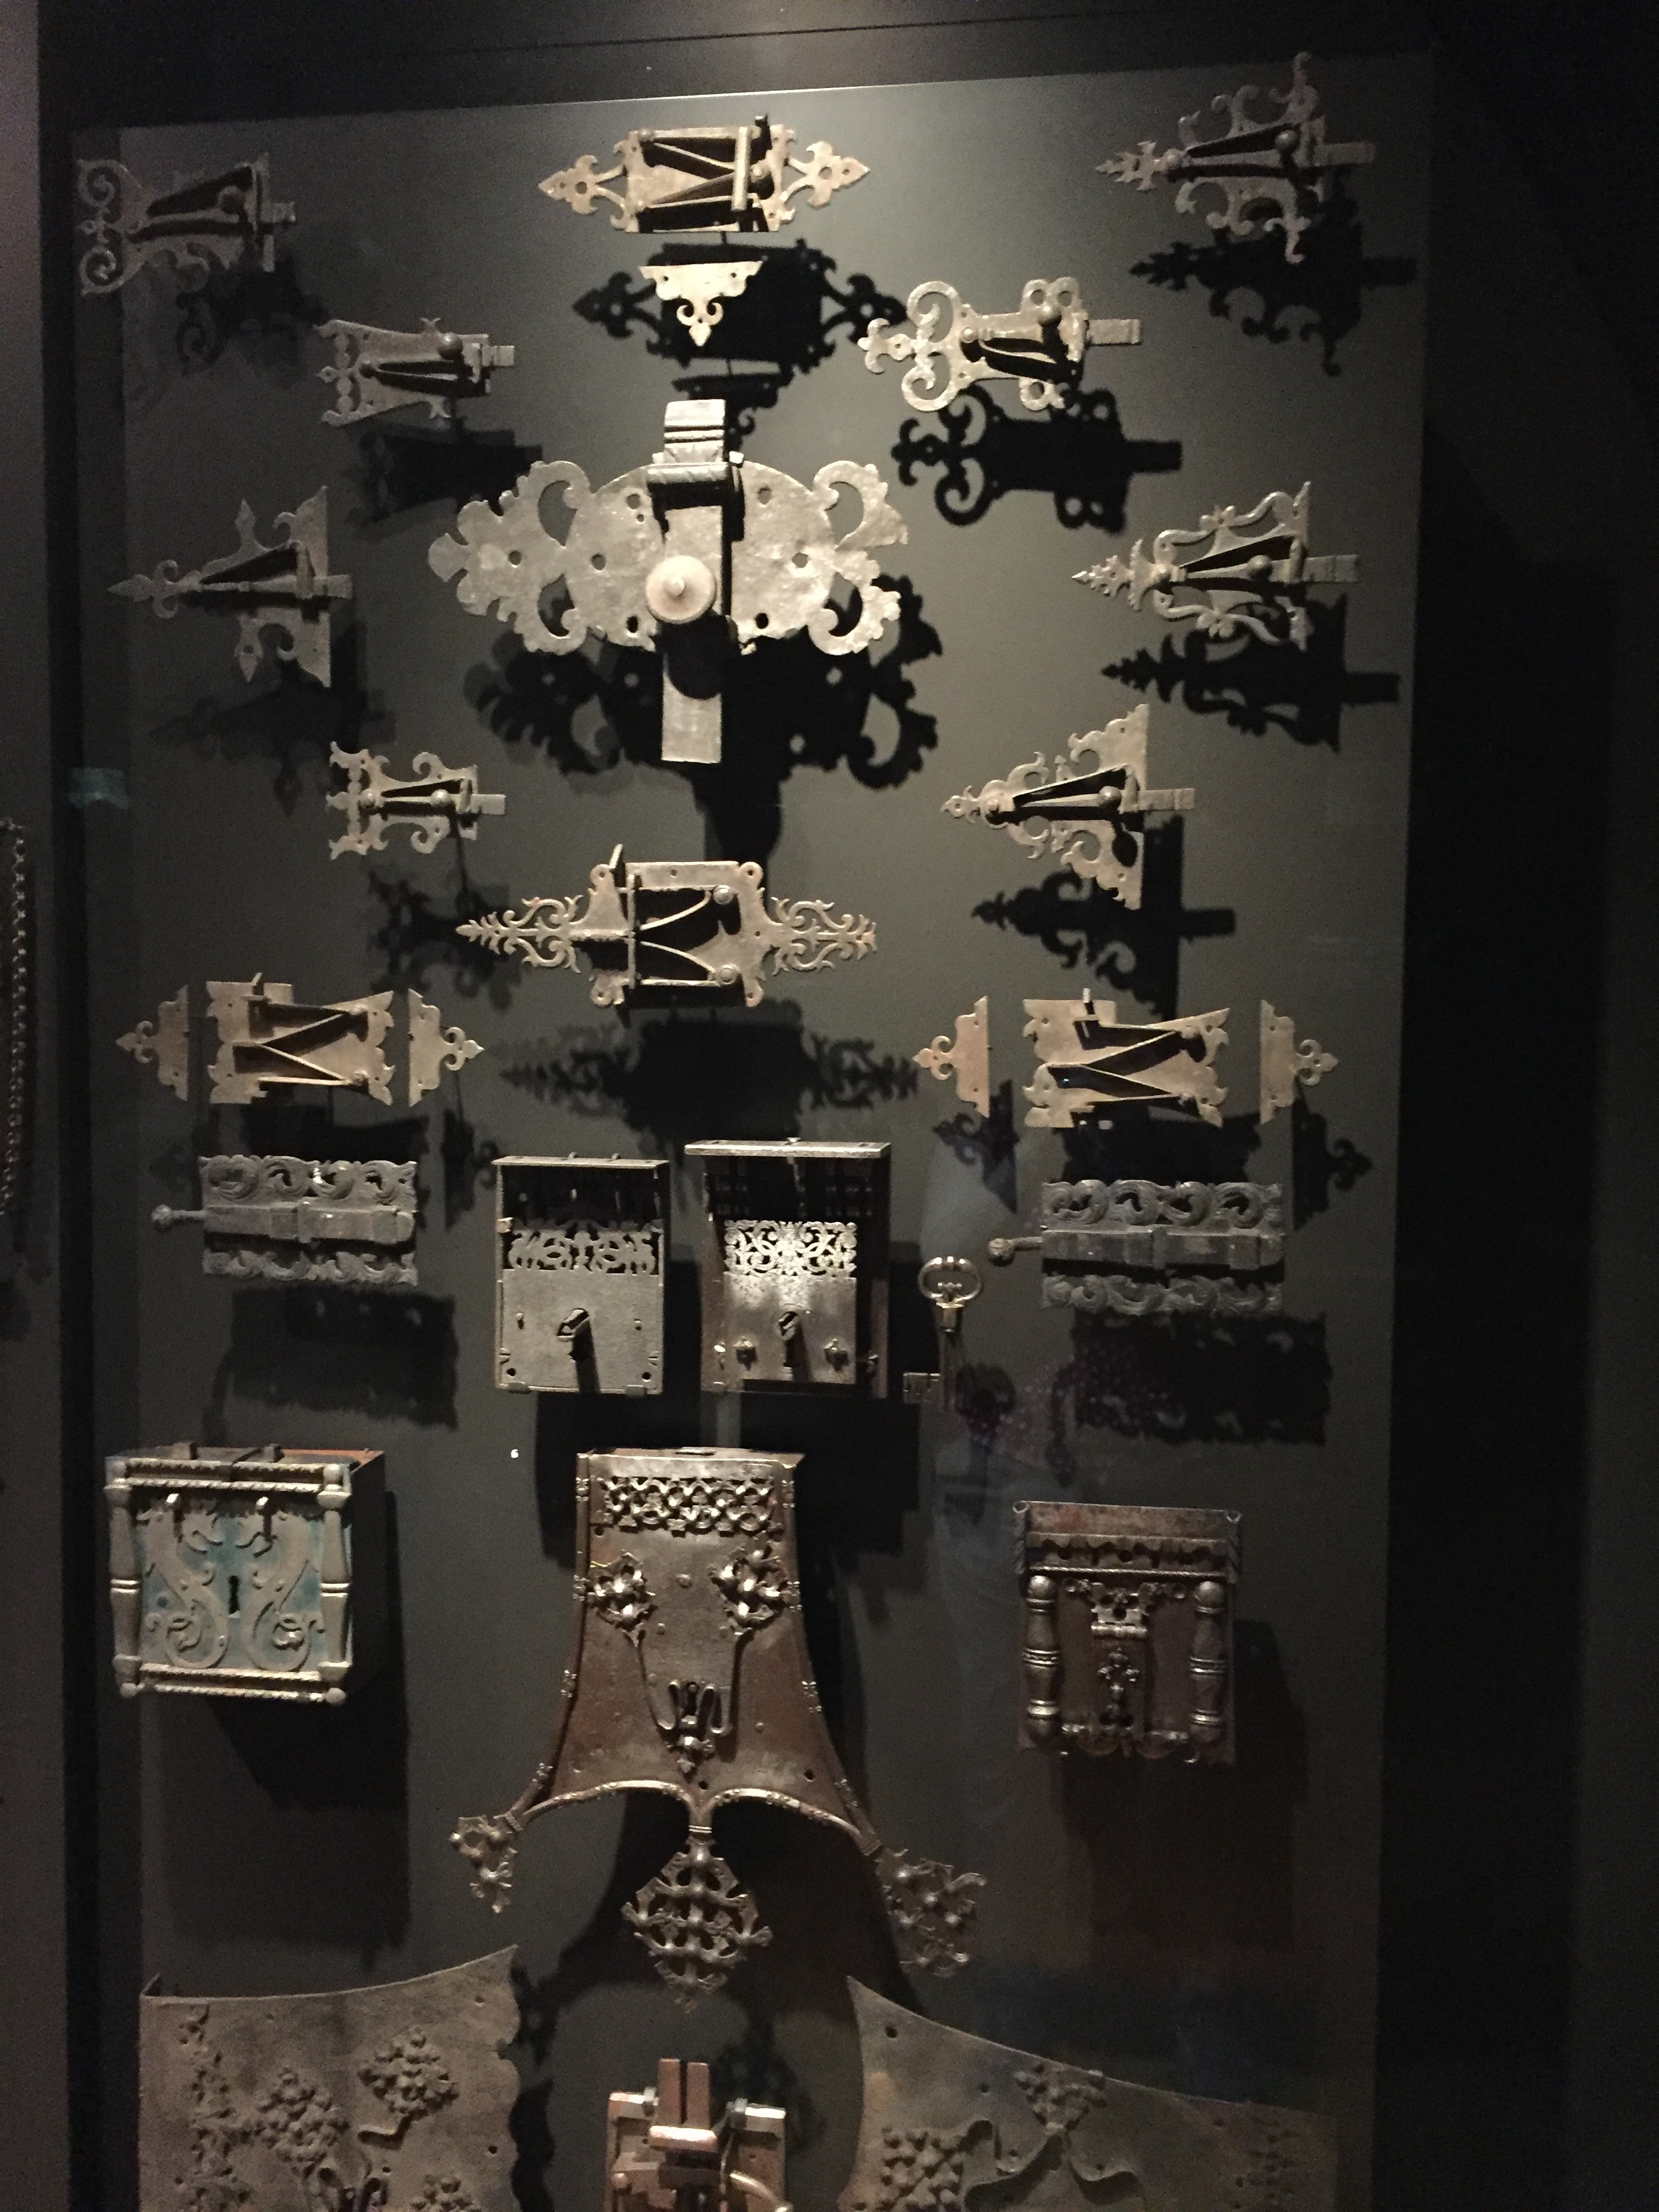 collection of locks in a glass case at the Rijksmuseum in Amsterdam